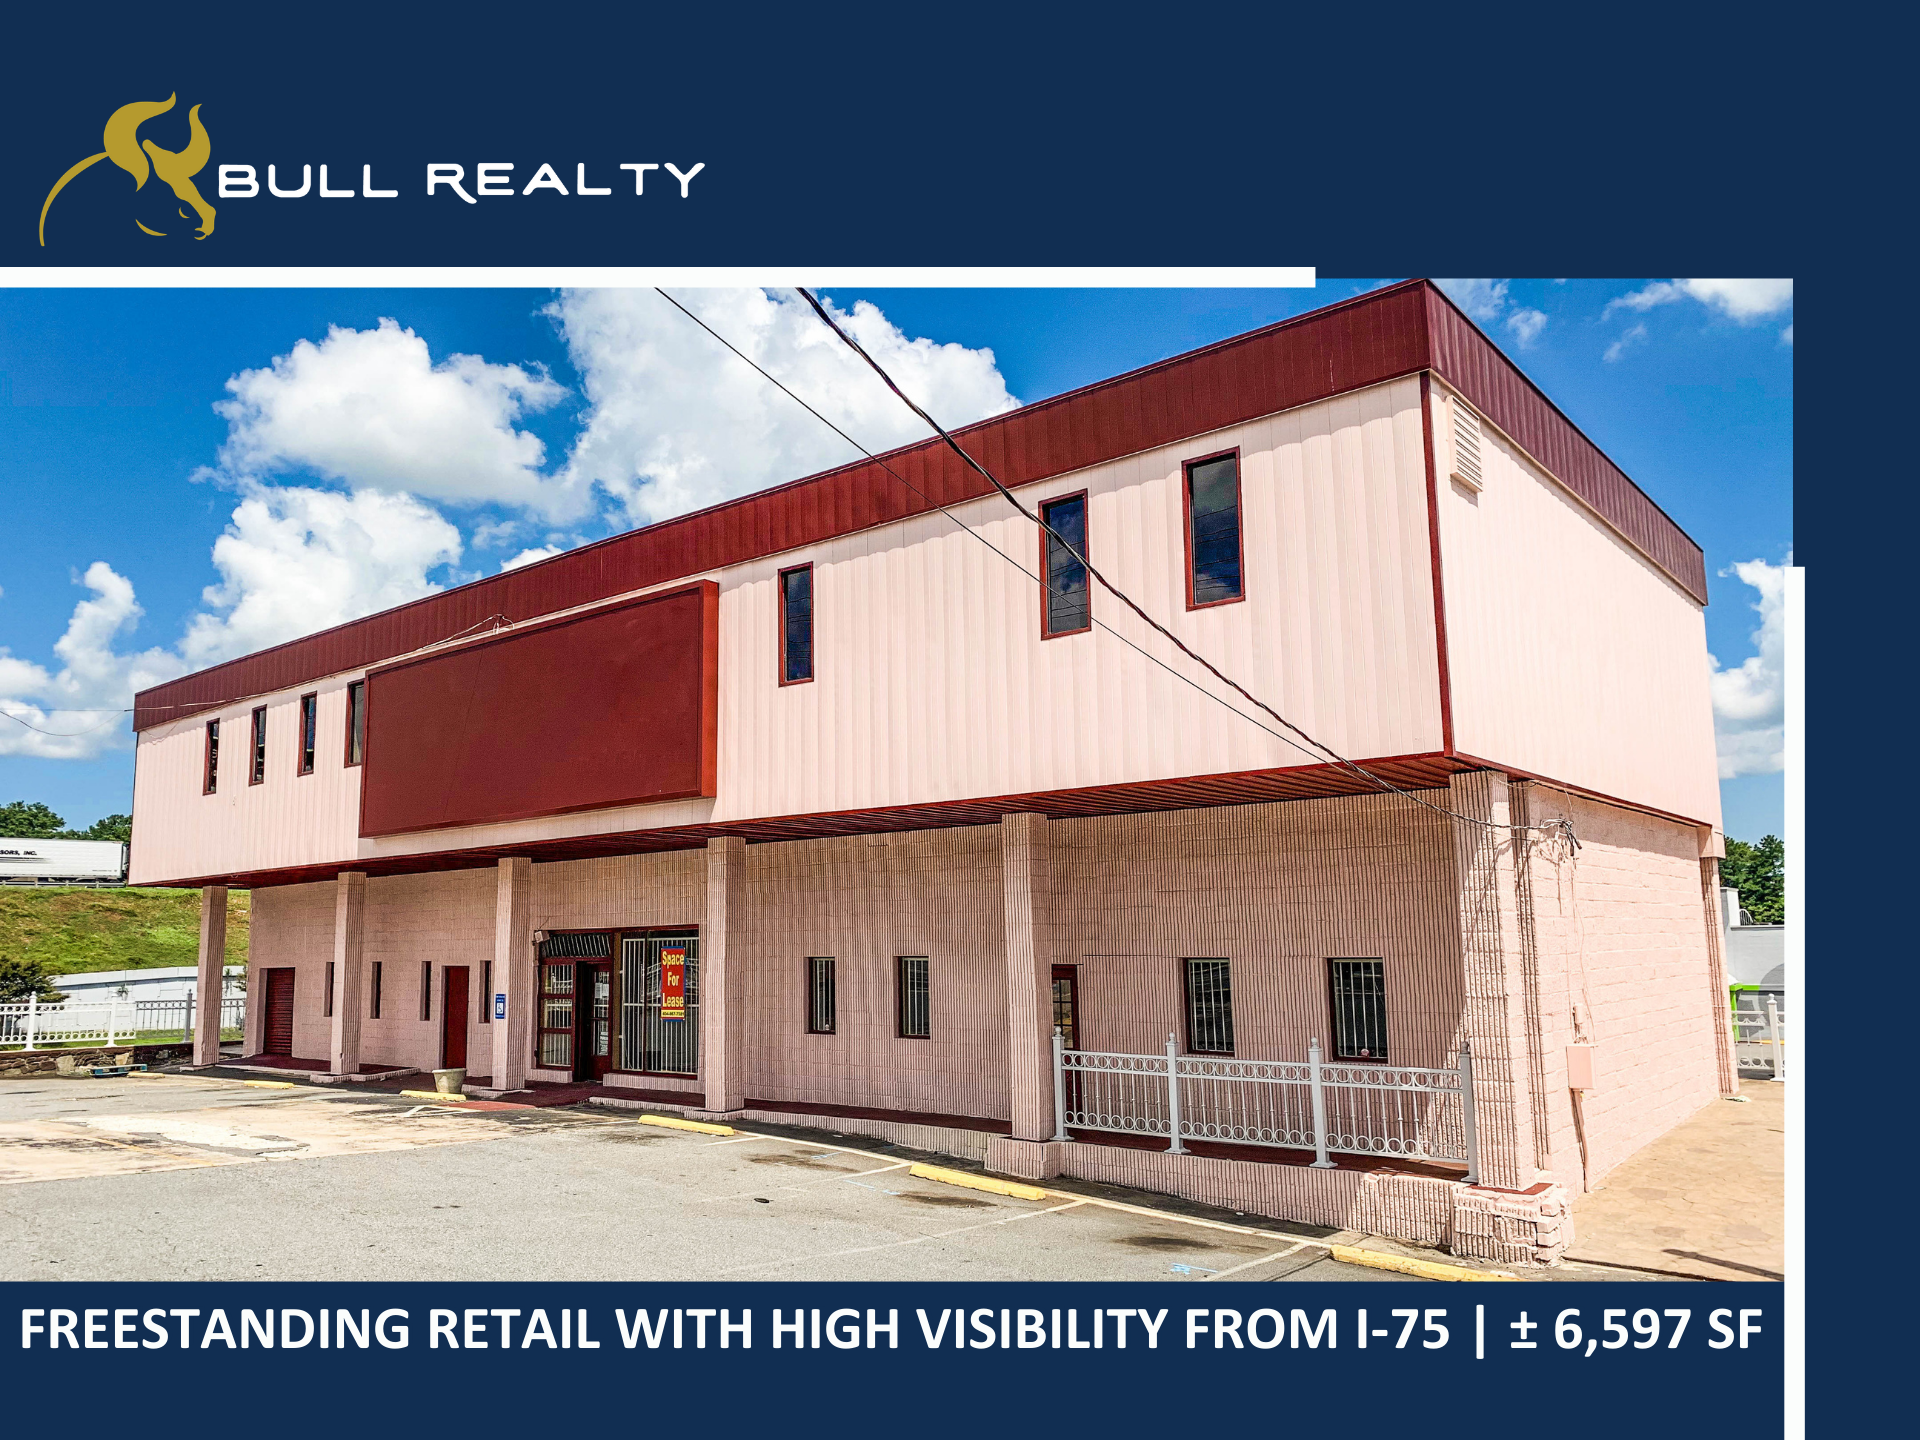 Freestanding Retail with Visibility from I-75    ± 6,597 SF